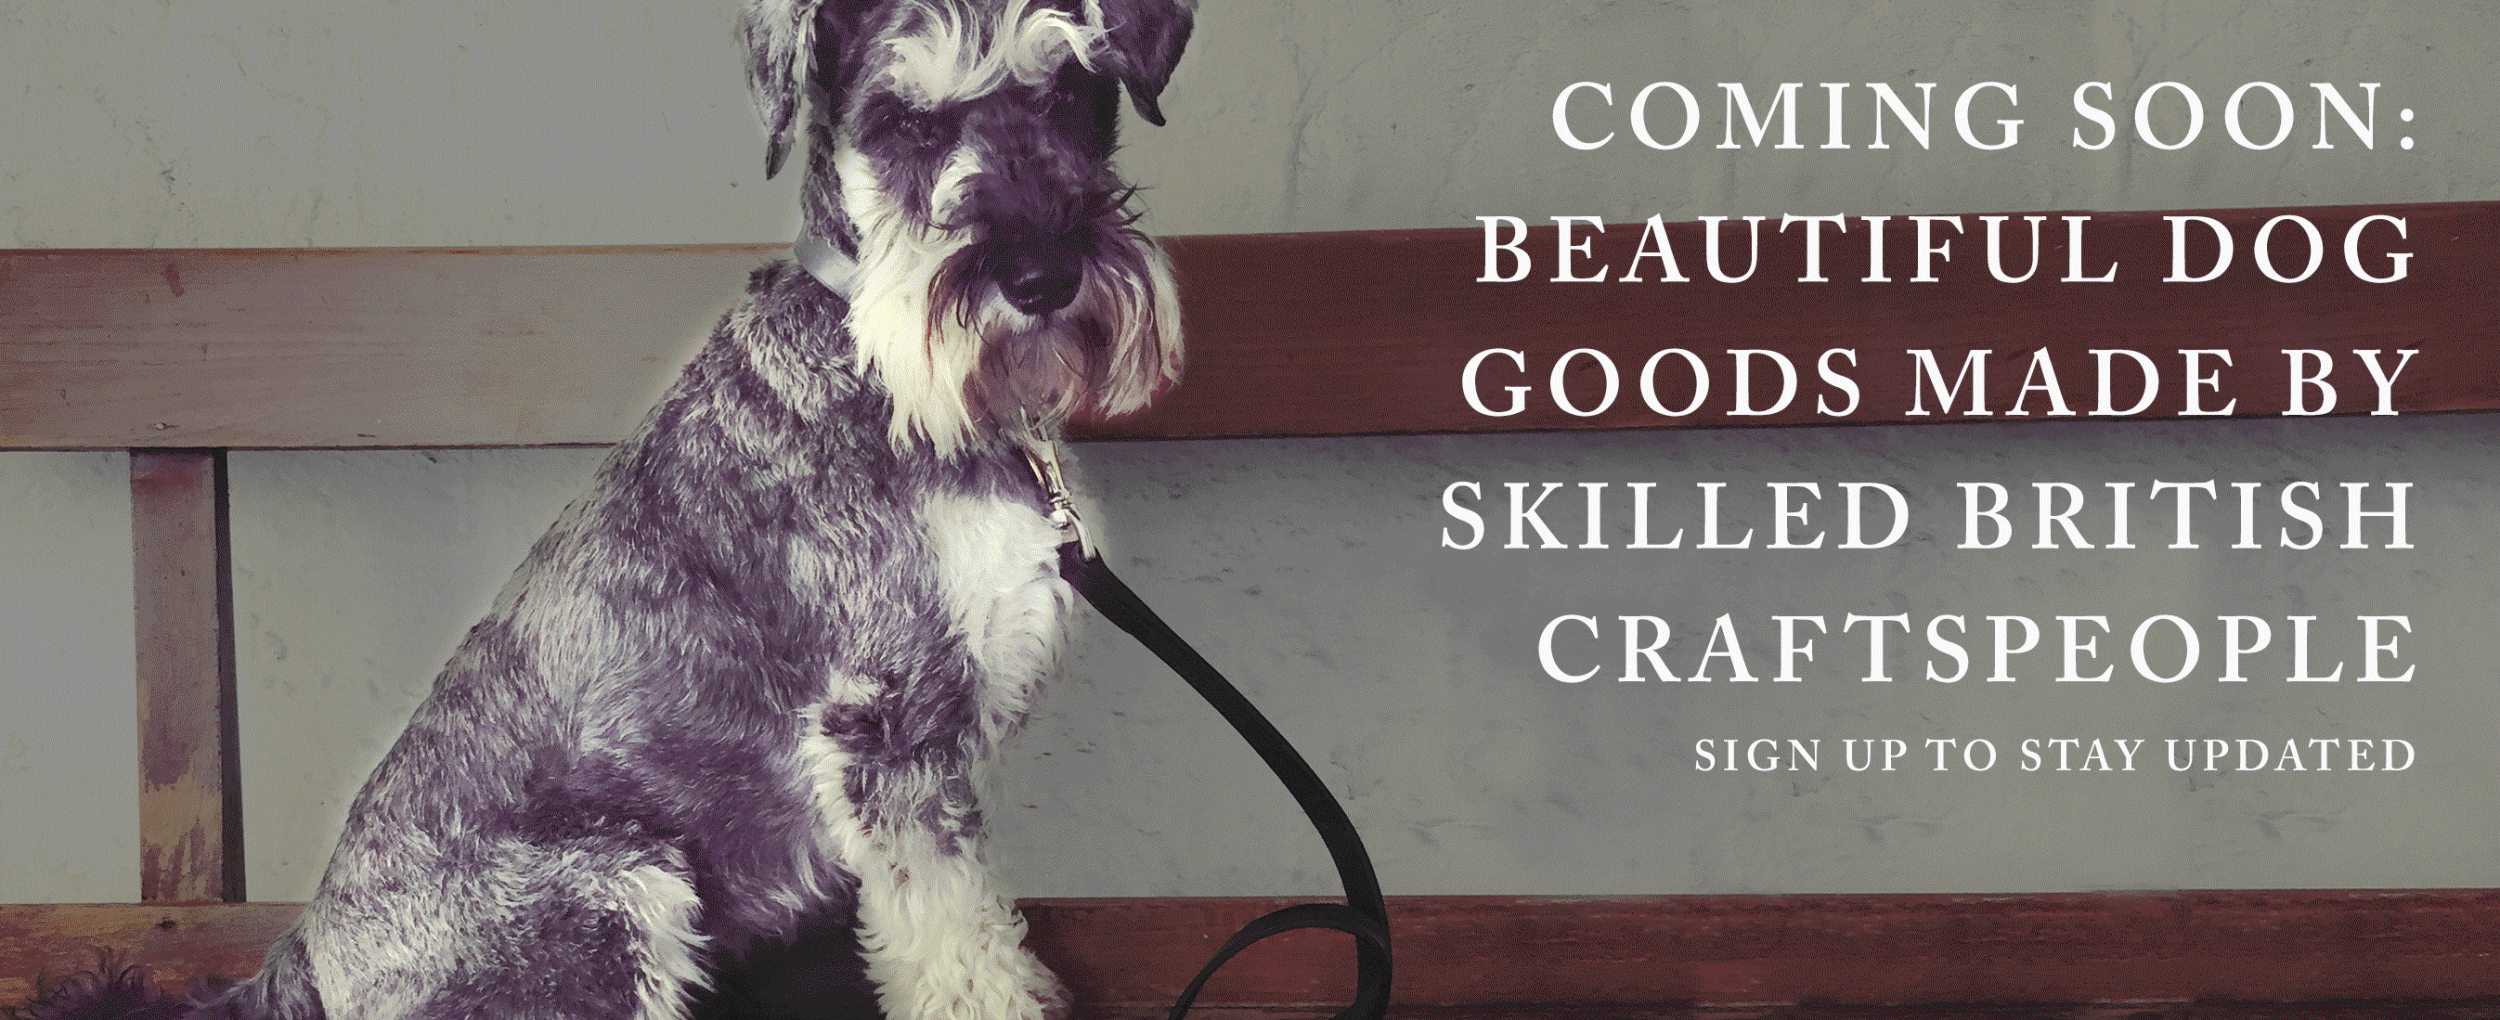 Coming soon beautiful dog goods made my skilled British craftspeople